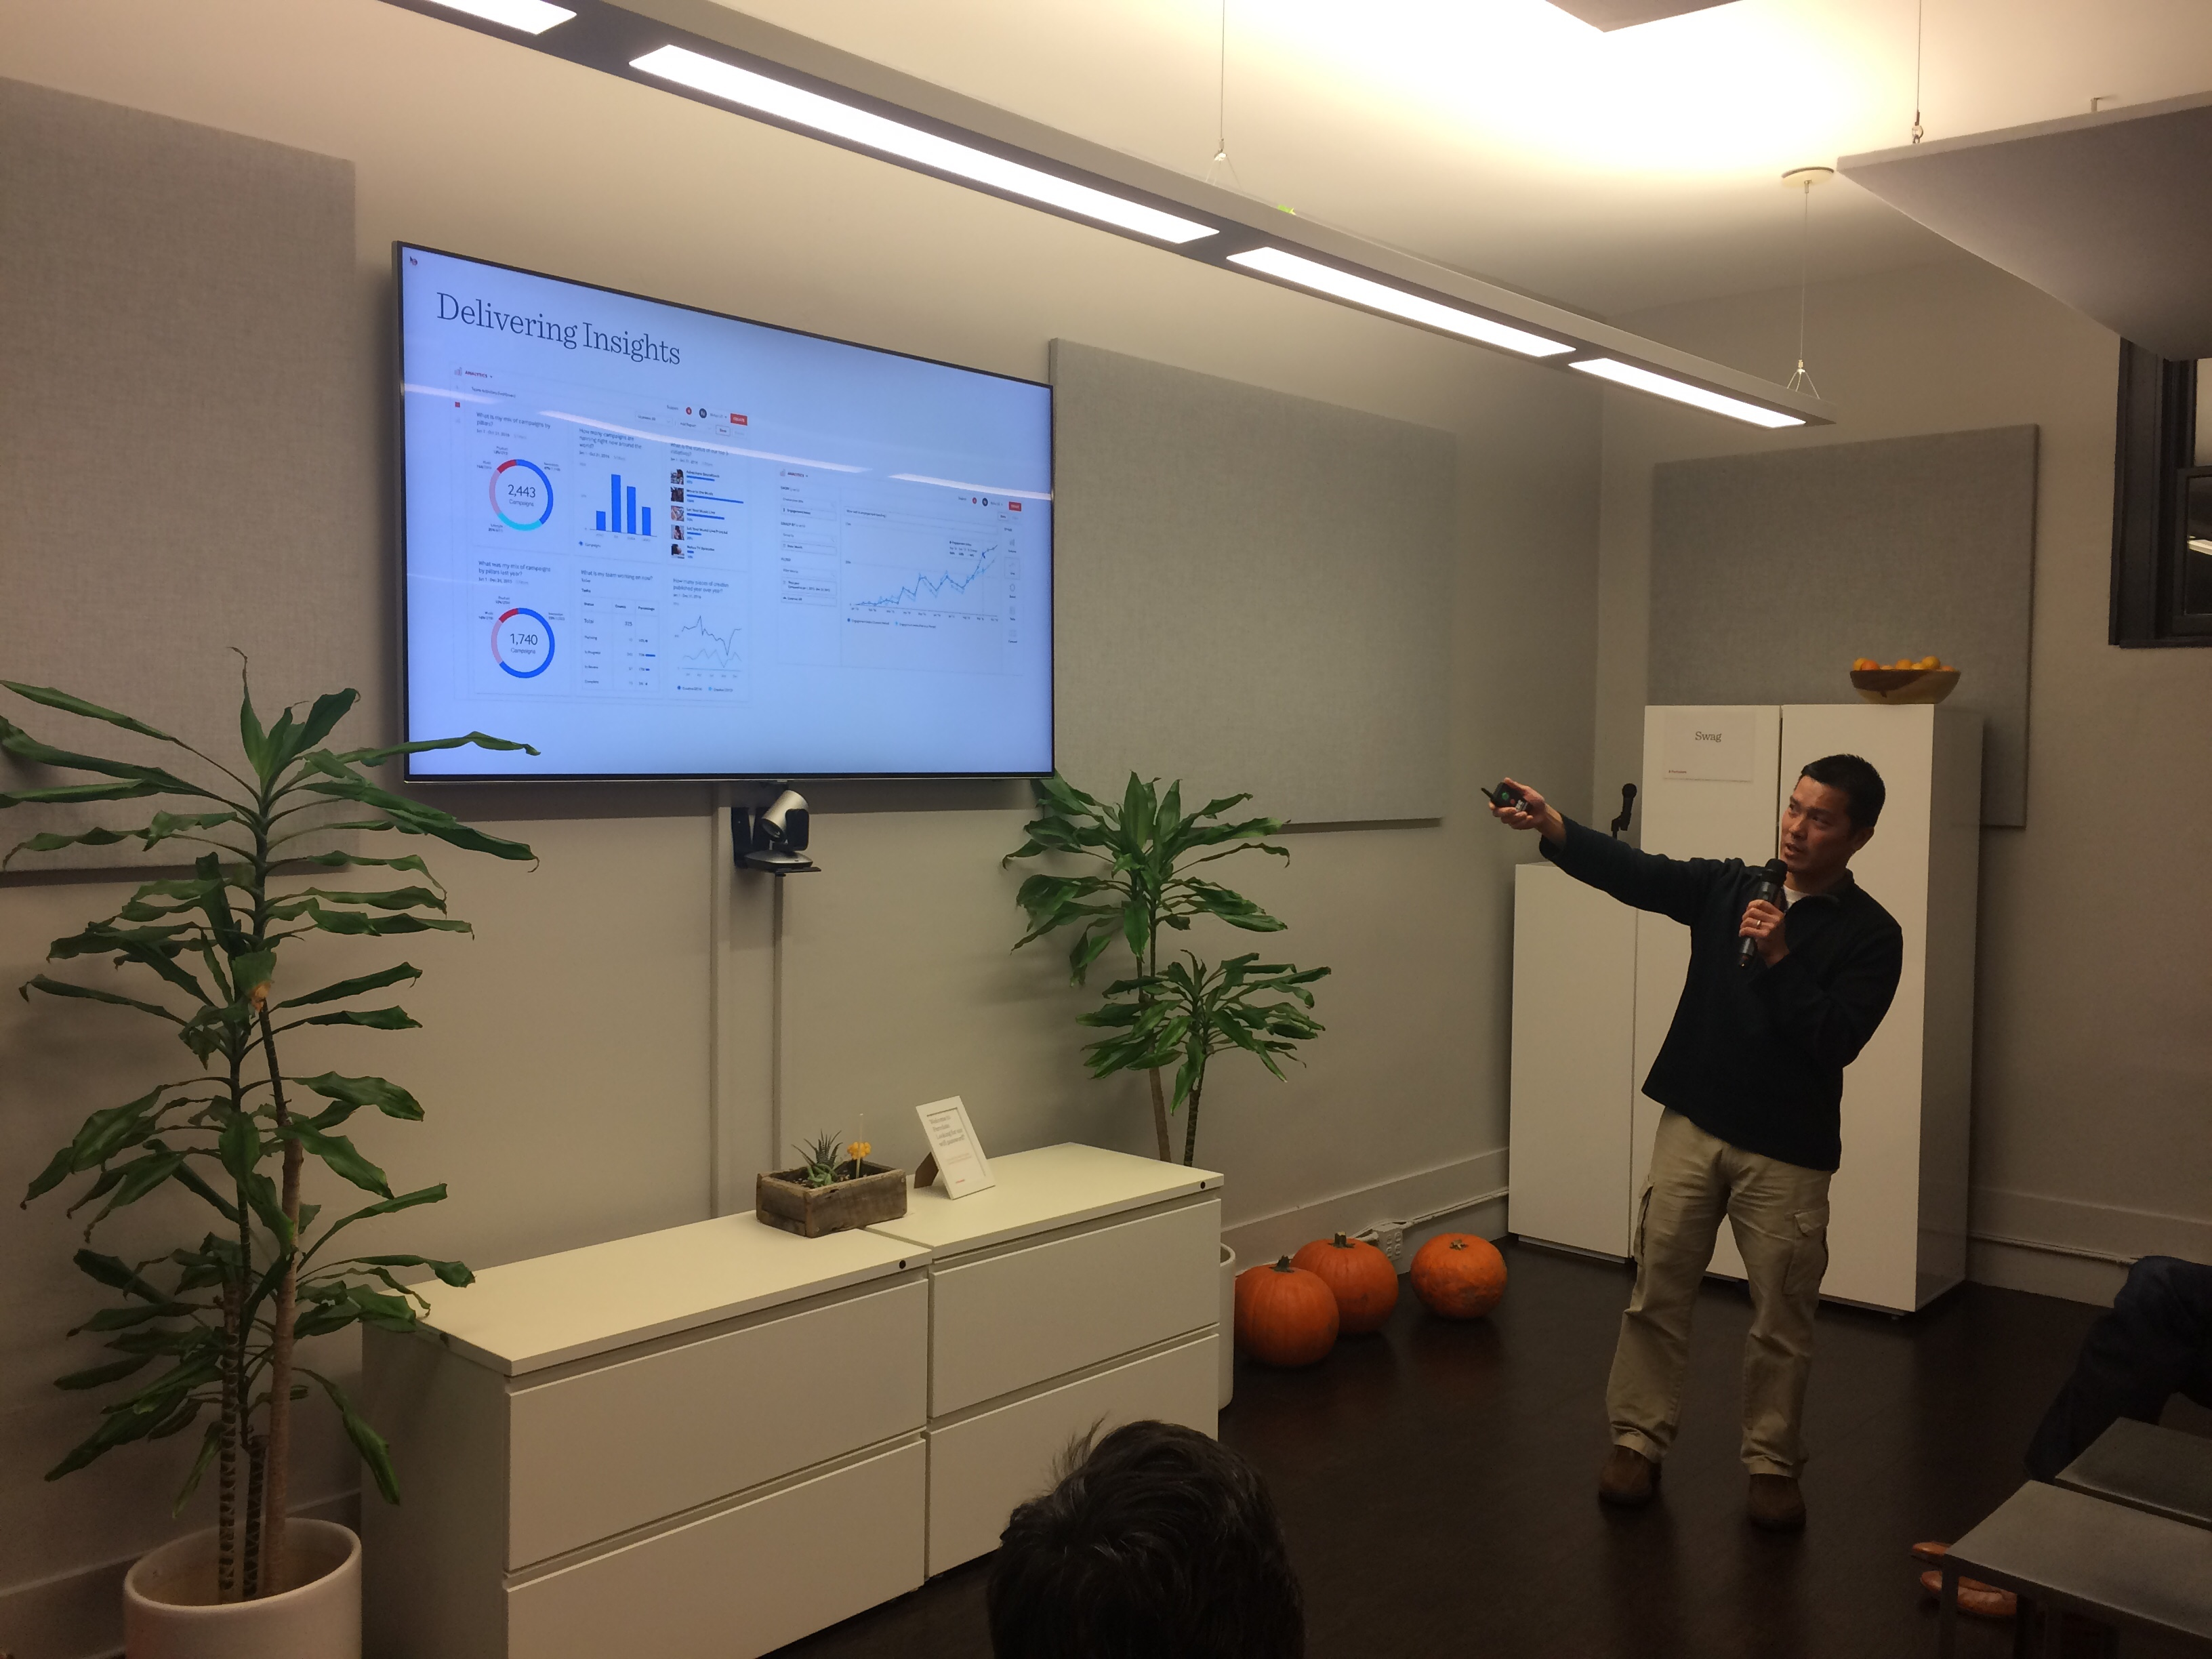 Senior Analytics Engineer Vinh Nguyen discussing the new Analytics platform at Percolate.